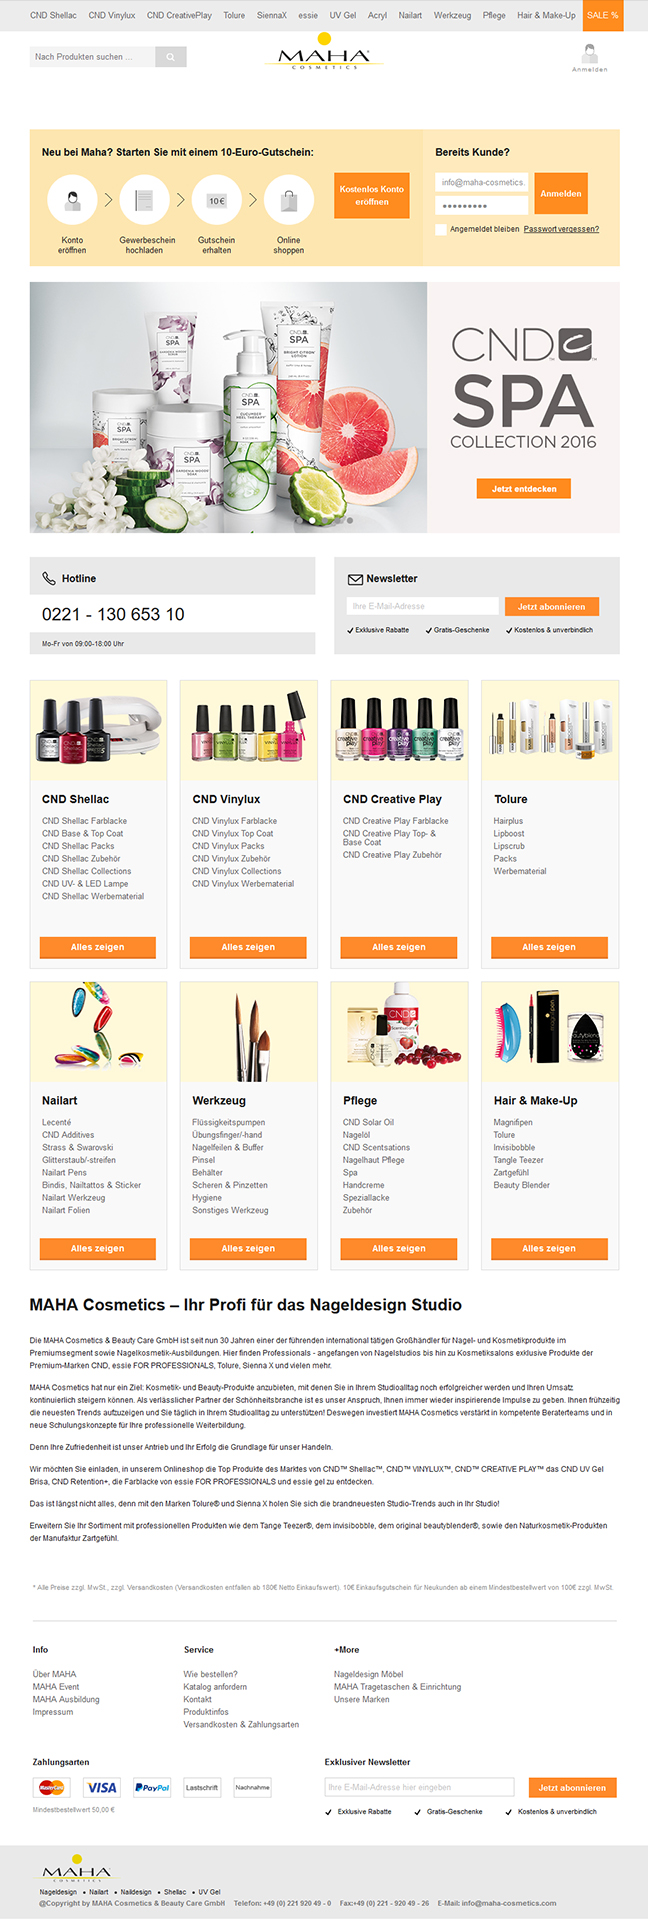 webdesign nail polish maha cosmetics online shop